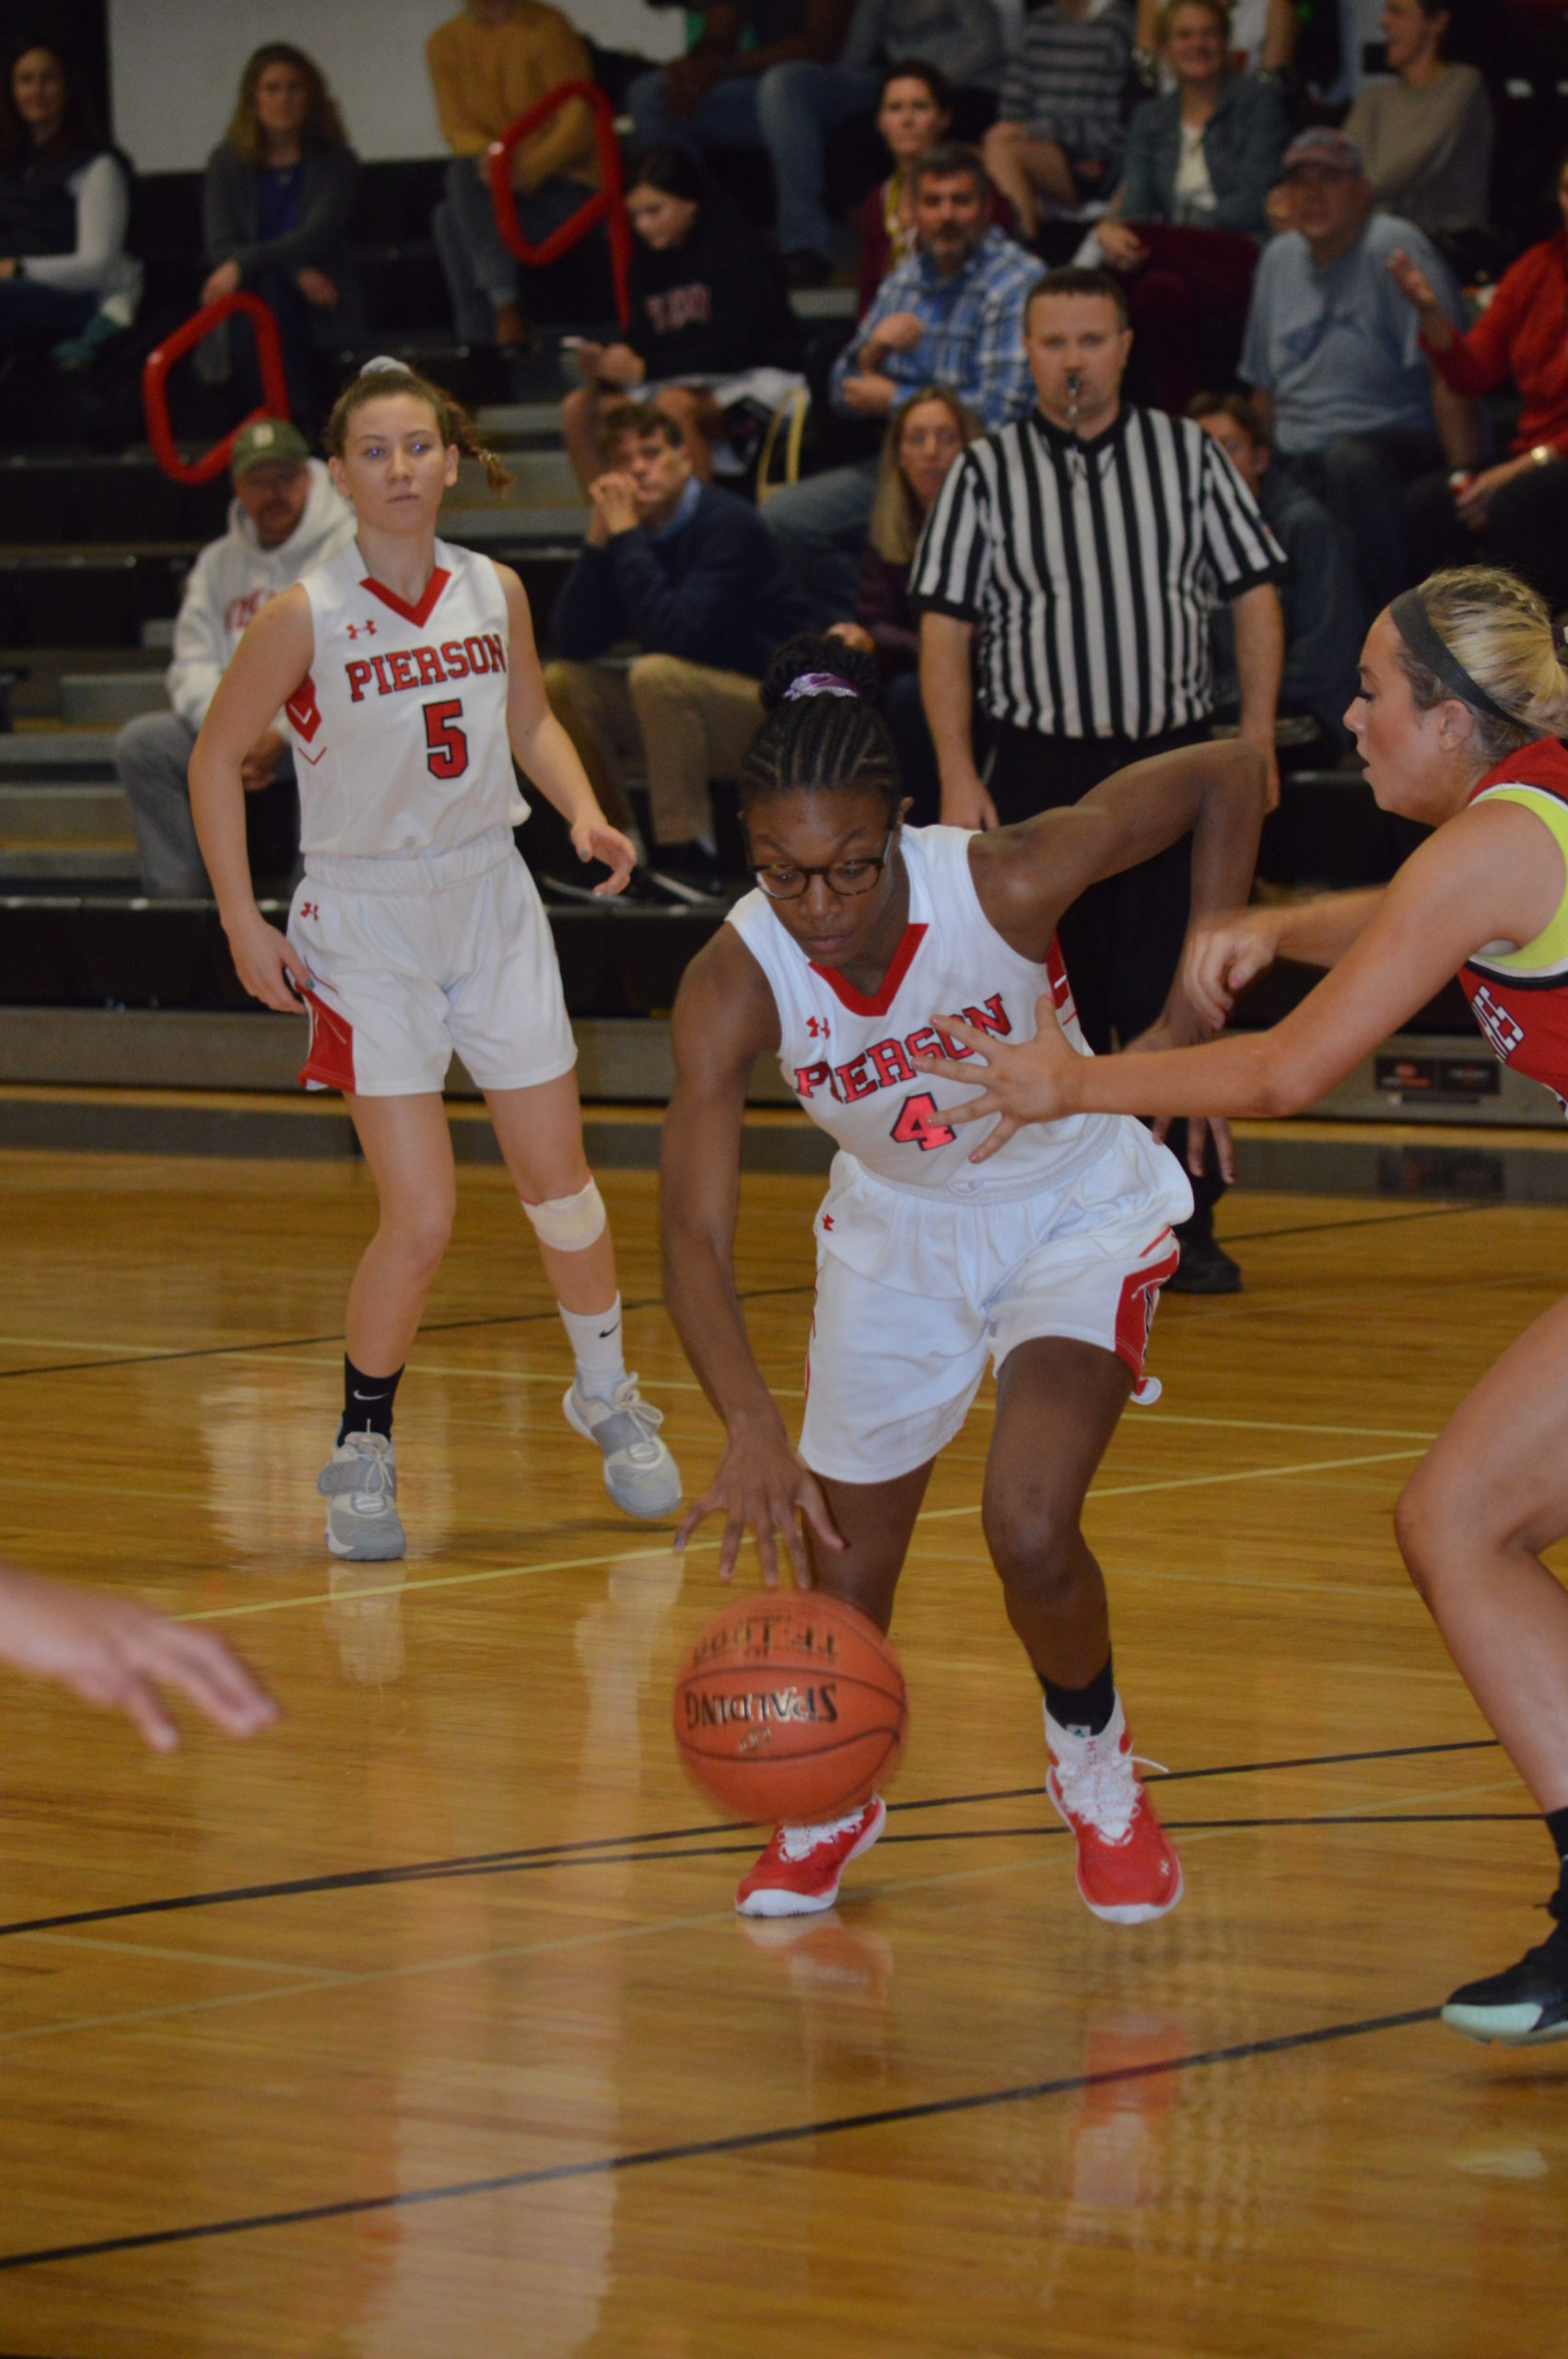 Pierson's Gylia Dryden drives to the basket against Center Moriches.